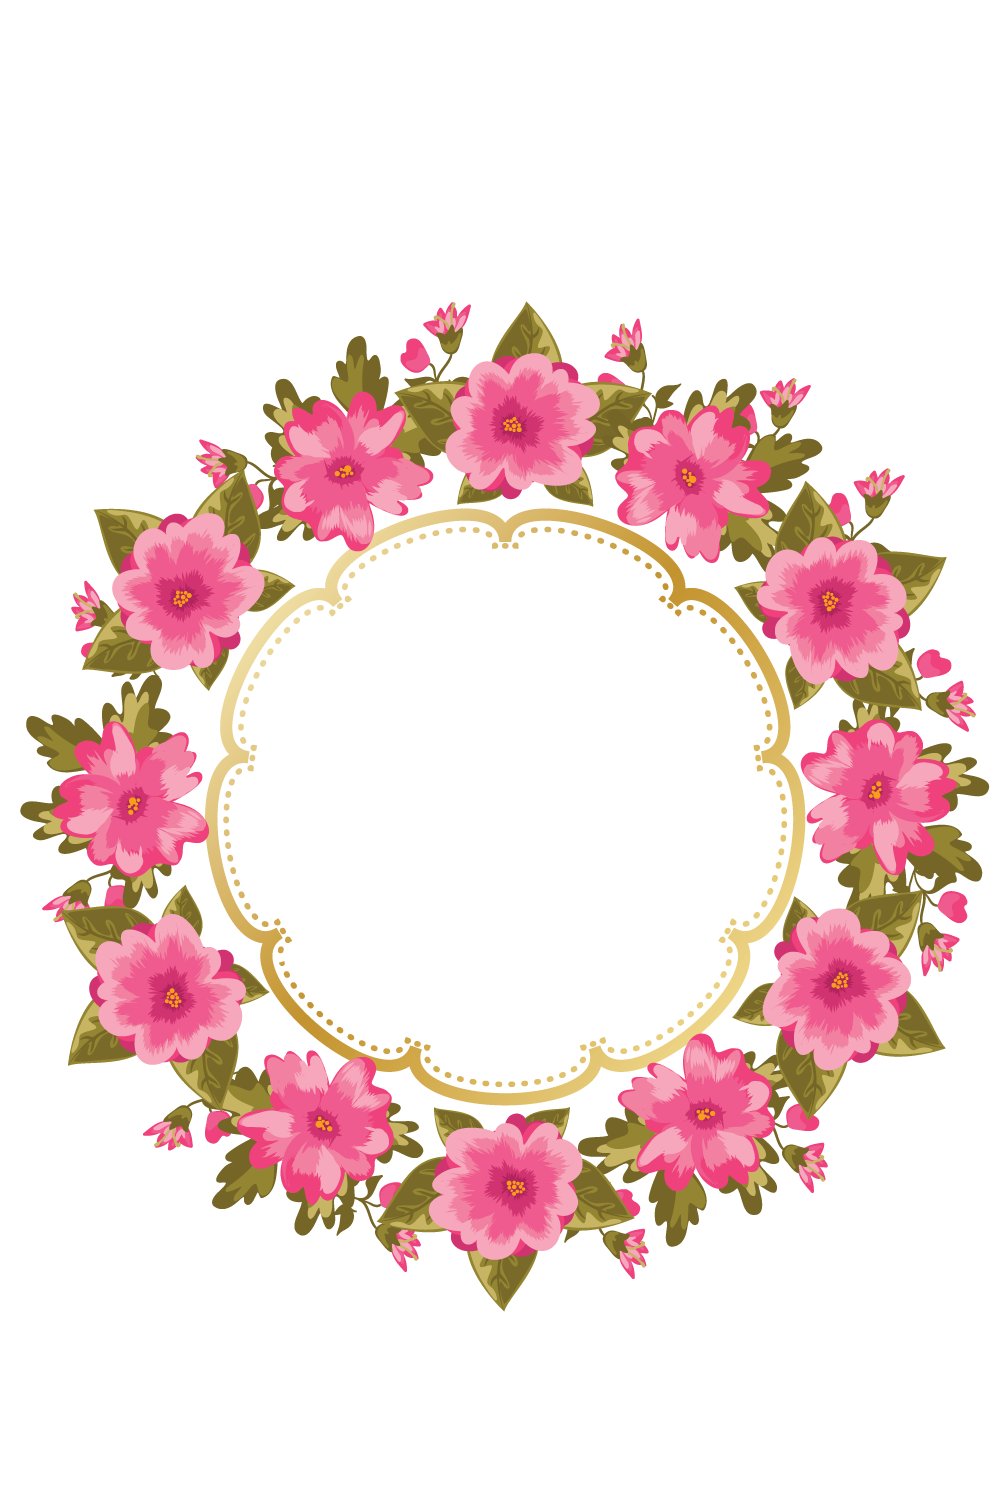 Watercolor flower wreath png. Http e top net